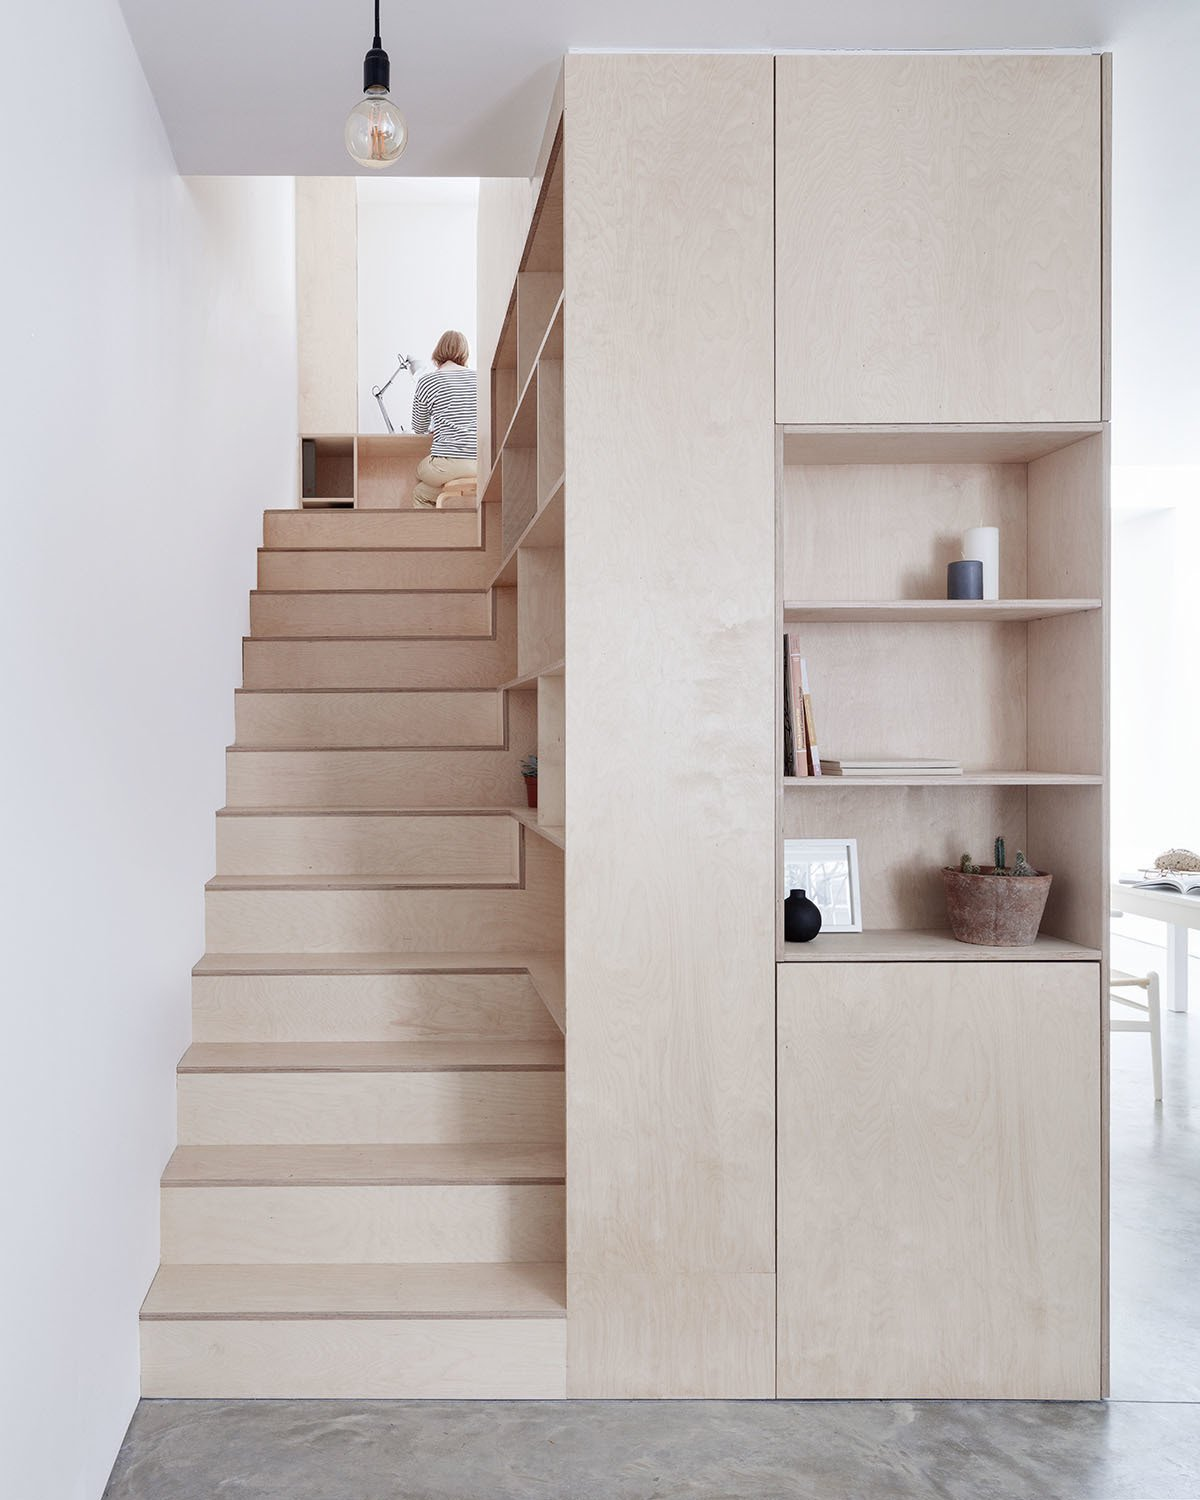 Storage Room, Cabinet Storage Type, and Shelves Storage Type Photo caption: Clean lines in plywood and ample hidden storage give this home a sleek contemporary look.  Photo 3 of 10 in 10 Clever Ways to Sneak Storage Into Your Renovation